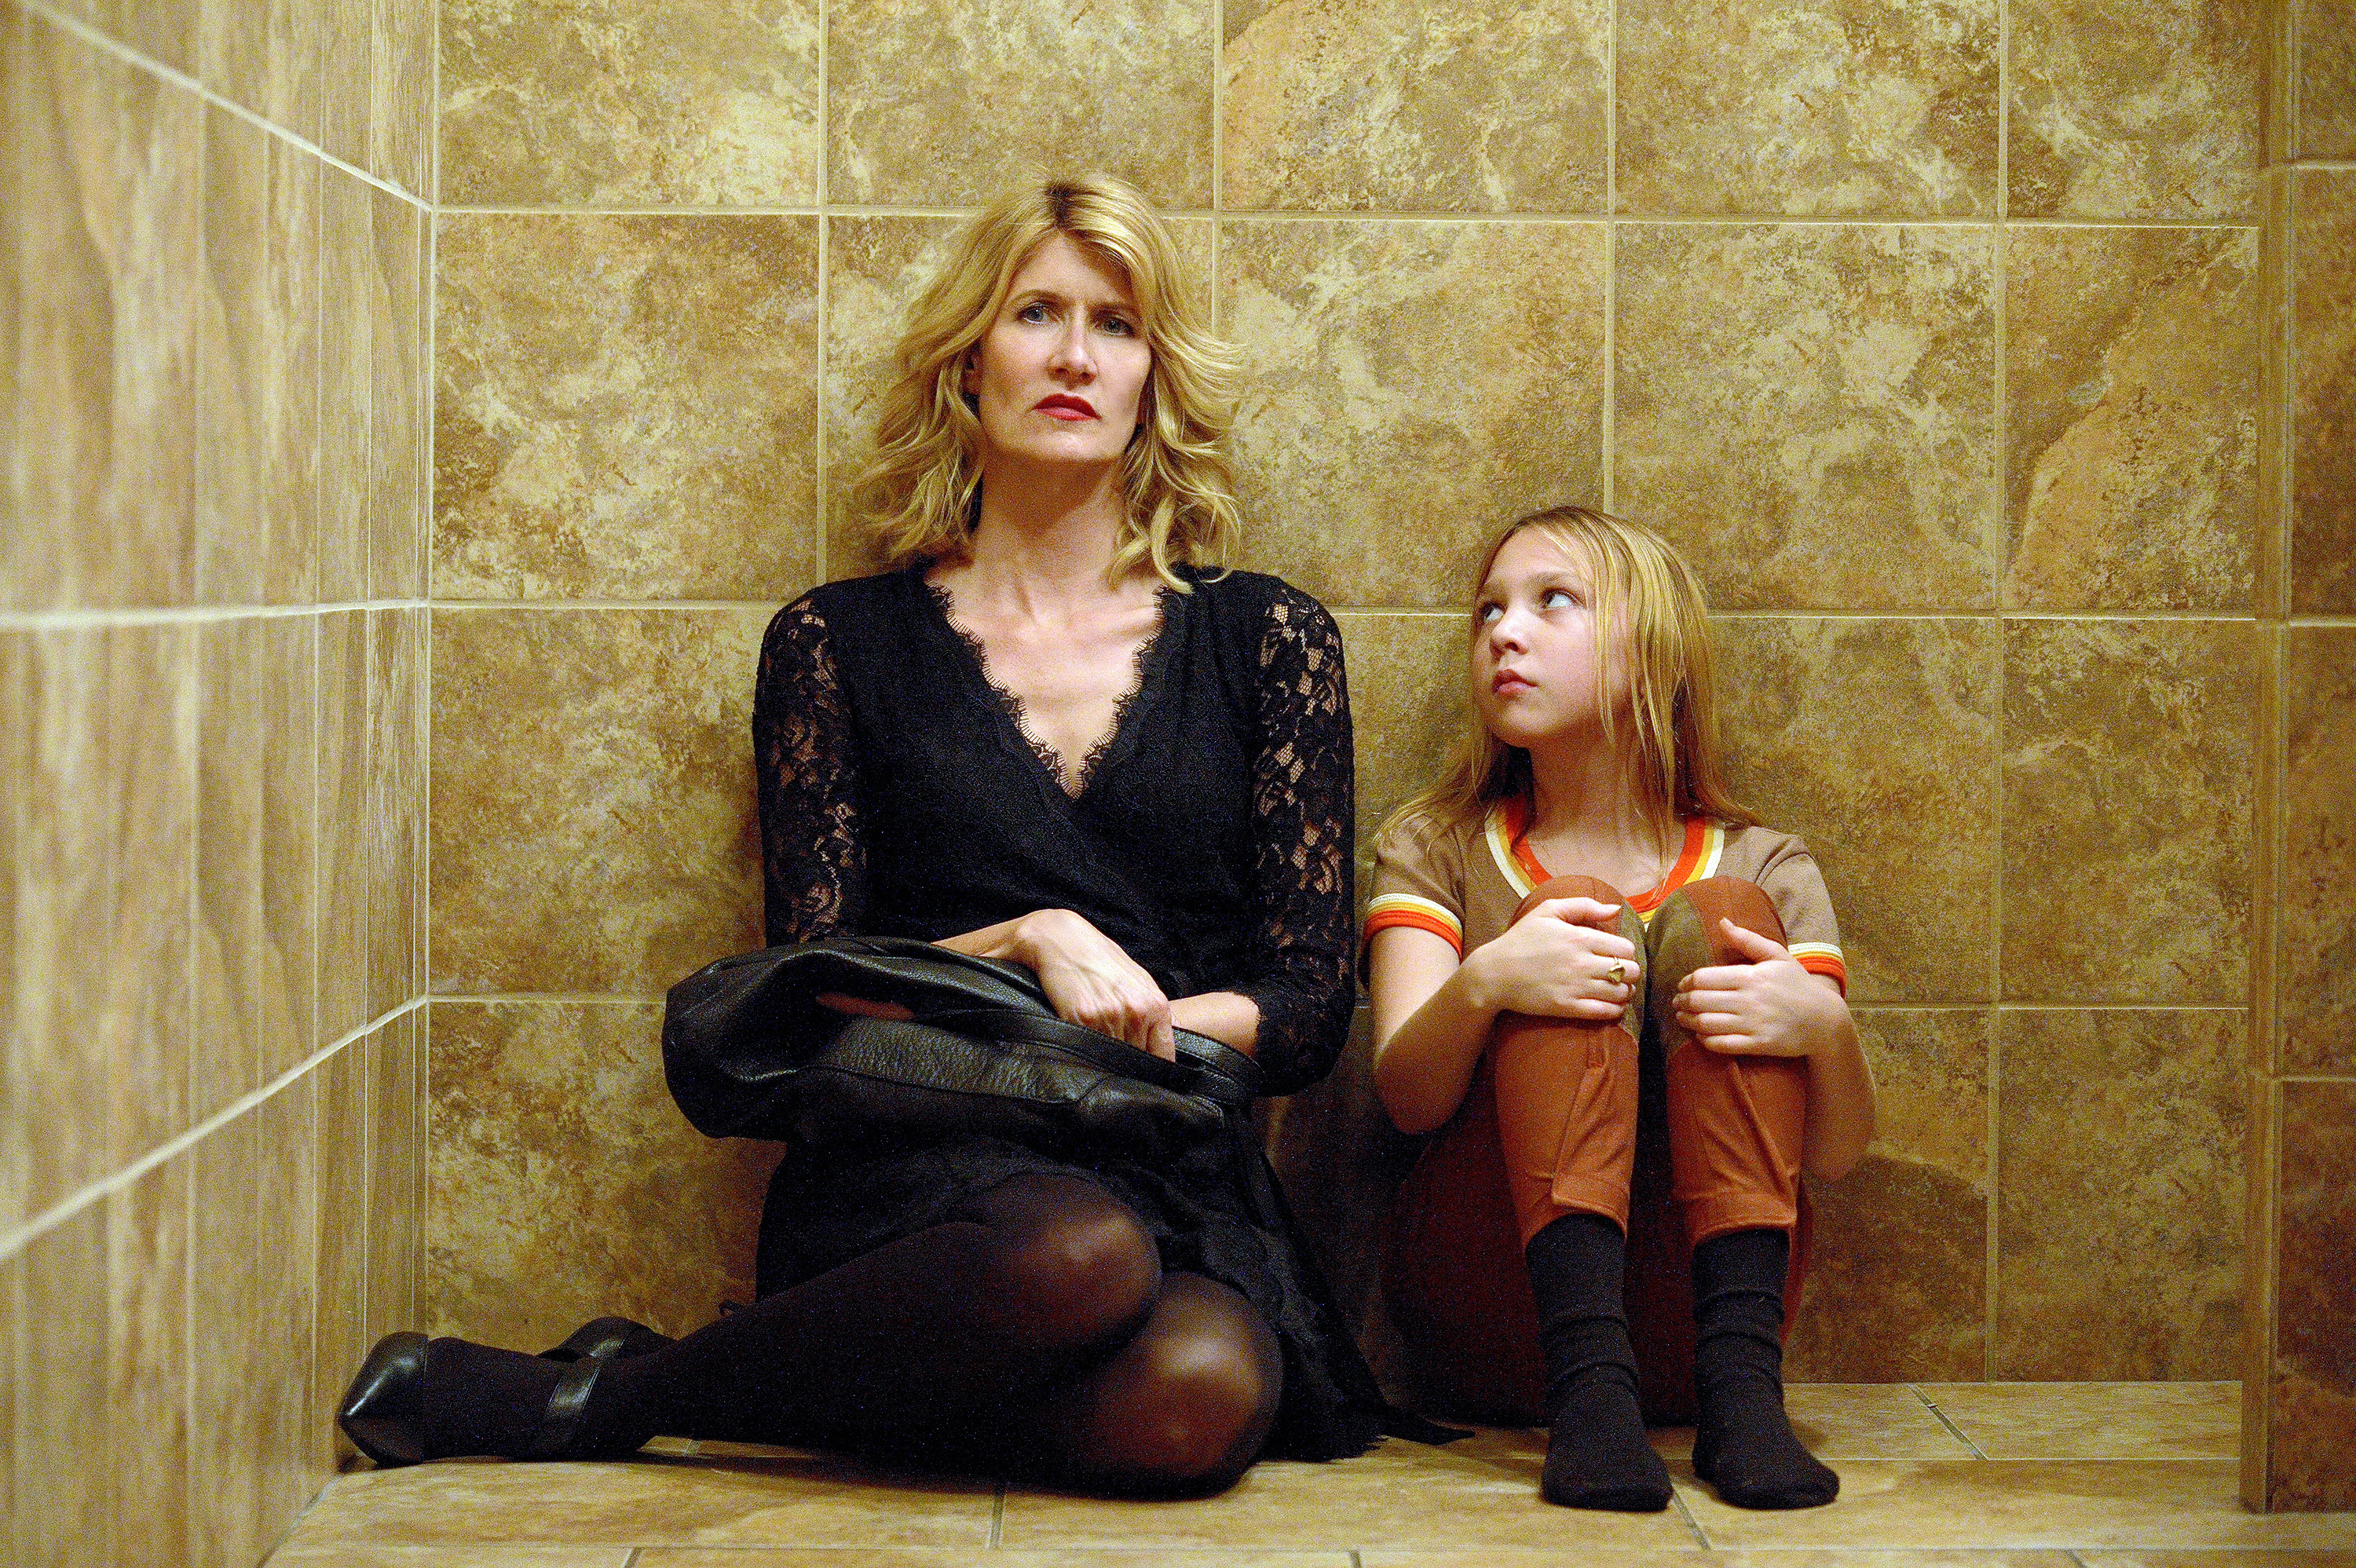 Laura Dern and Isabel Nelisse appear in <i>The Tale</i> by Jennifer Fox, an official selection of the U.S. Dramatic Competition at the 2018 Sundance Film Festival. Courtesy of Sundance Institute | photo by Kyle Kaplan. All photos are copyrighted and may be used by press only for the purpose of news or editorial coverage of Sundance Institute programs. Photos must be accompanied by a credit to the photographer and/or 'Courtesy of Sundance Institute.' Unauthorized use, alteration, reproduction or sale of logos and/or photos is strictly prohibited.